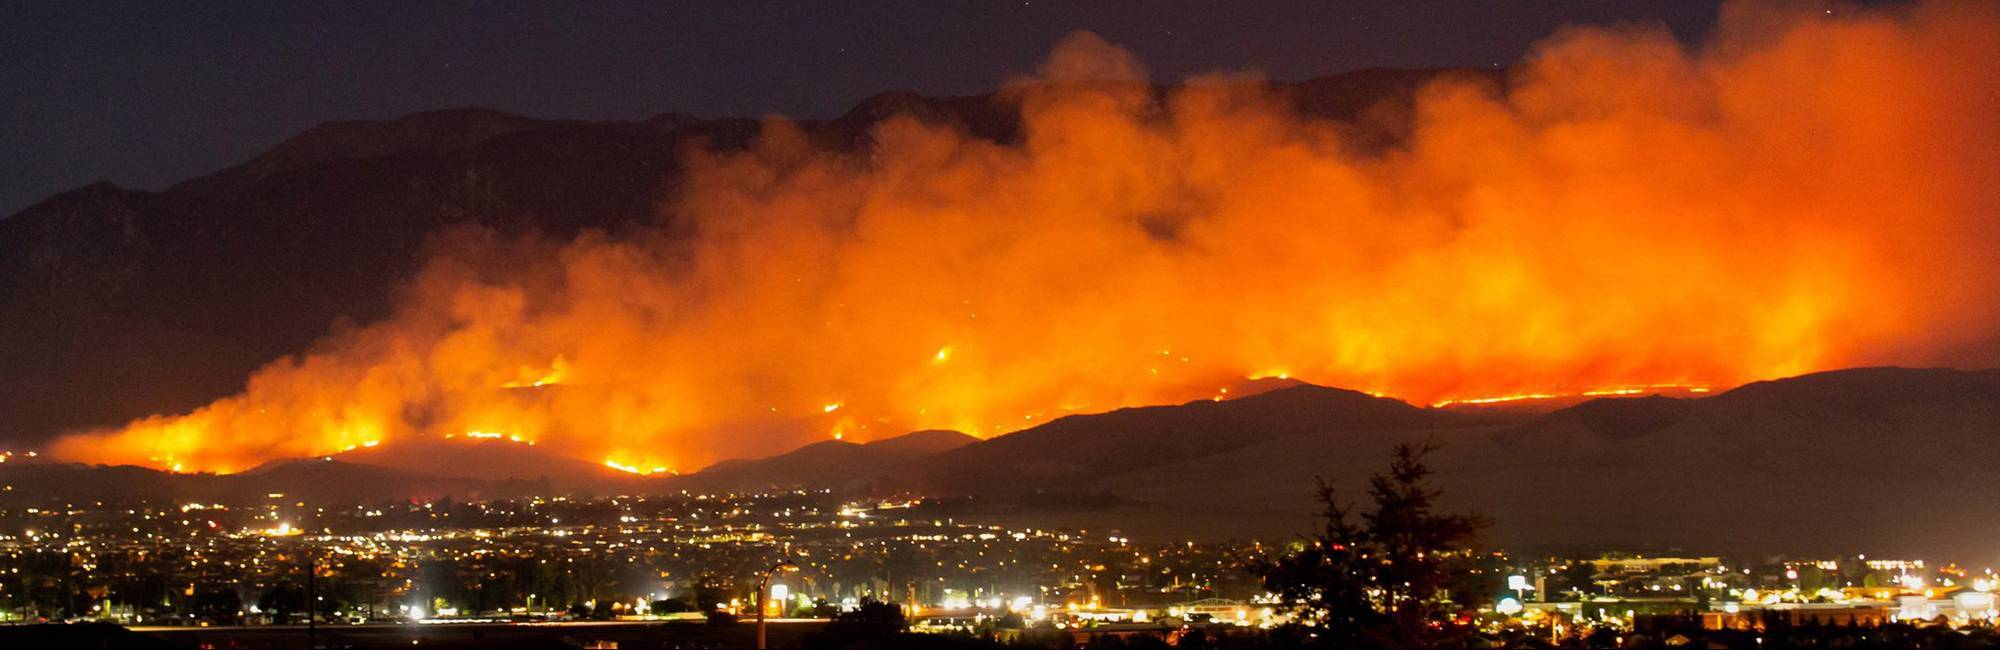 Photo of the Apple Fire burning in the foothills above Beaumont, California in July, 2020.